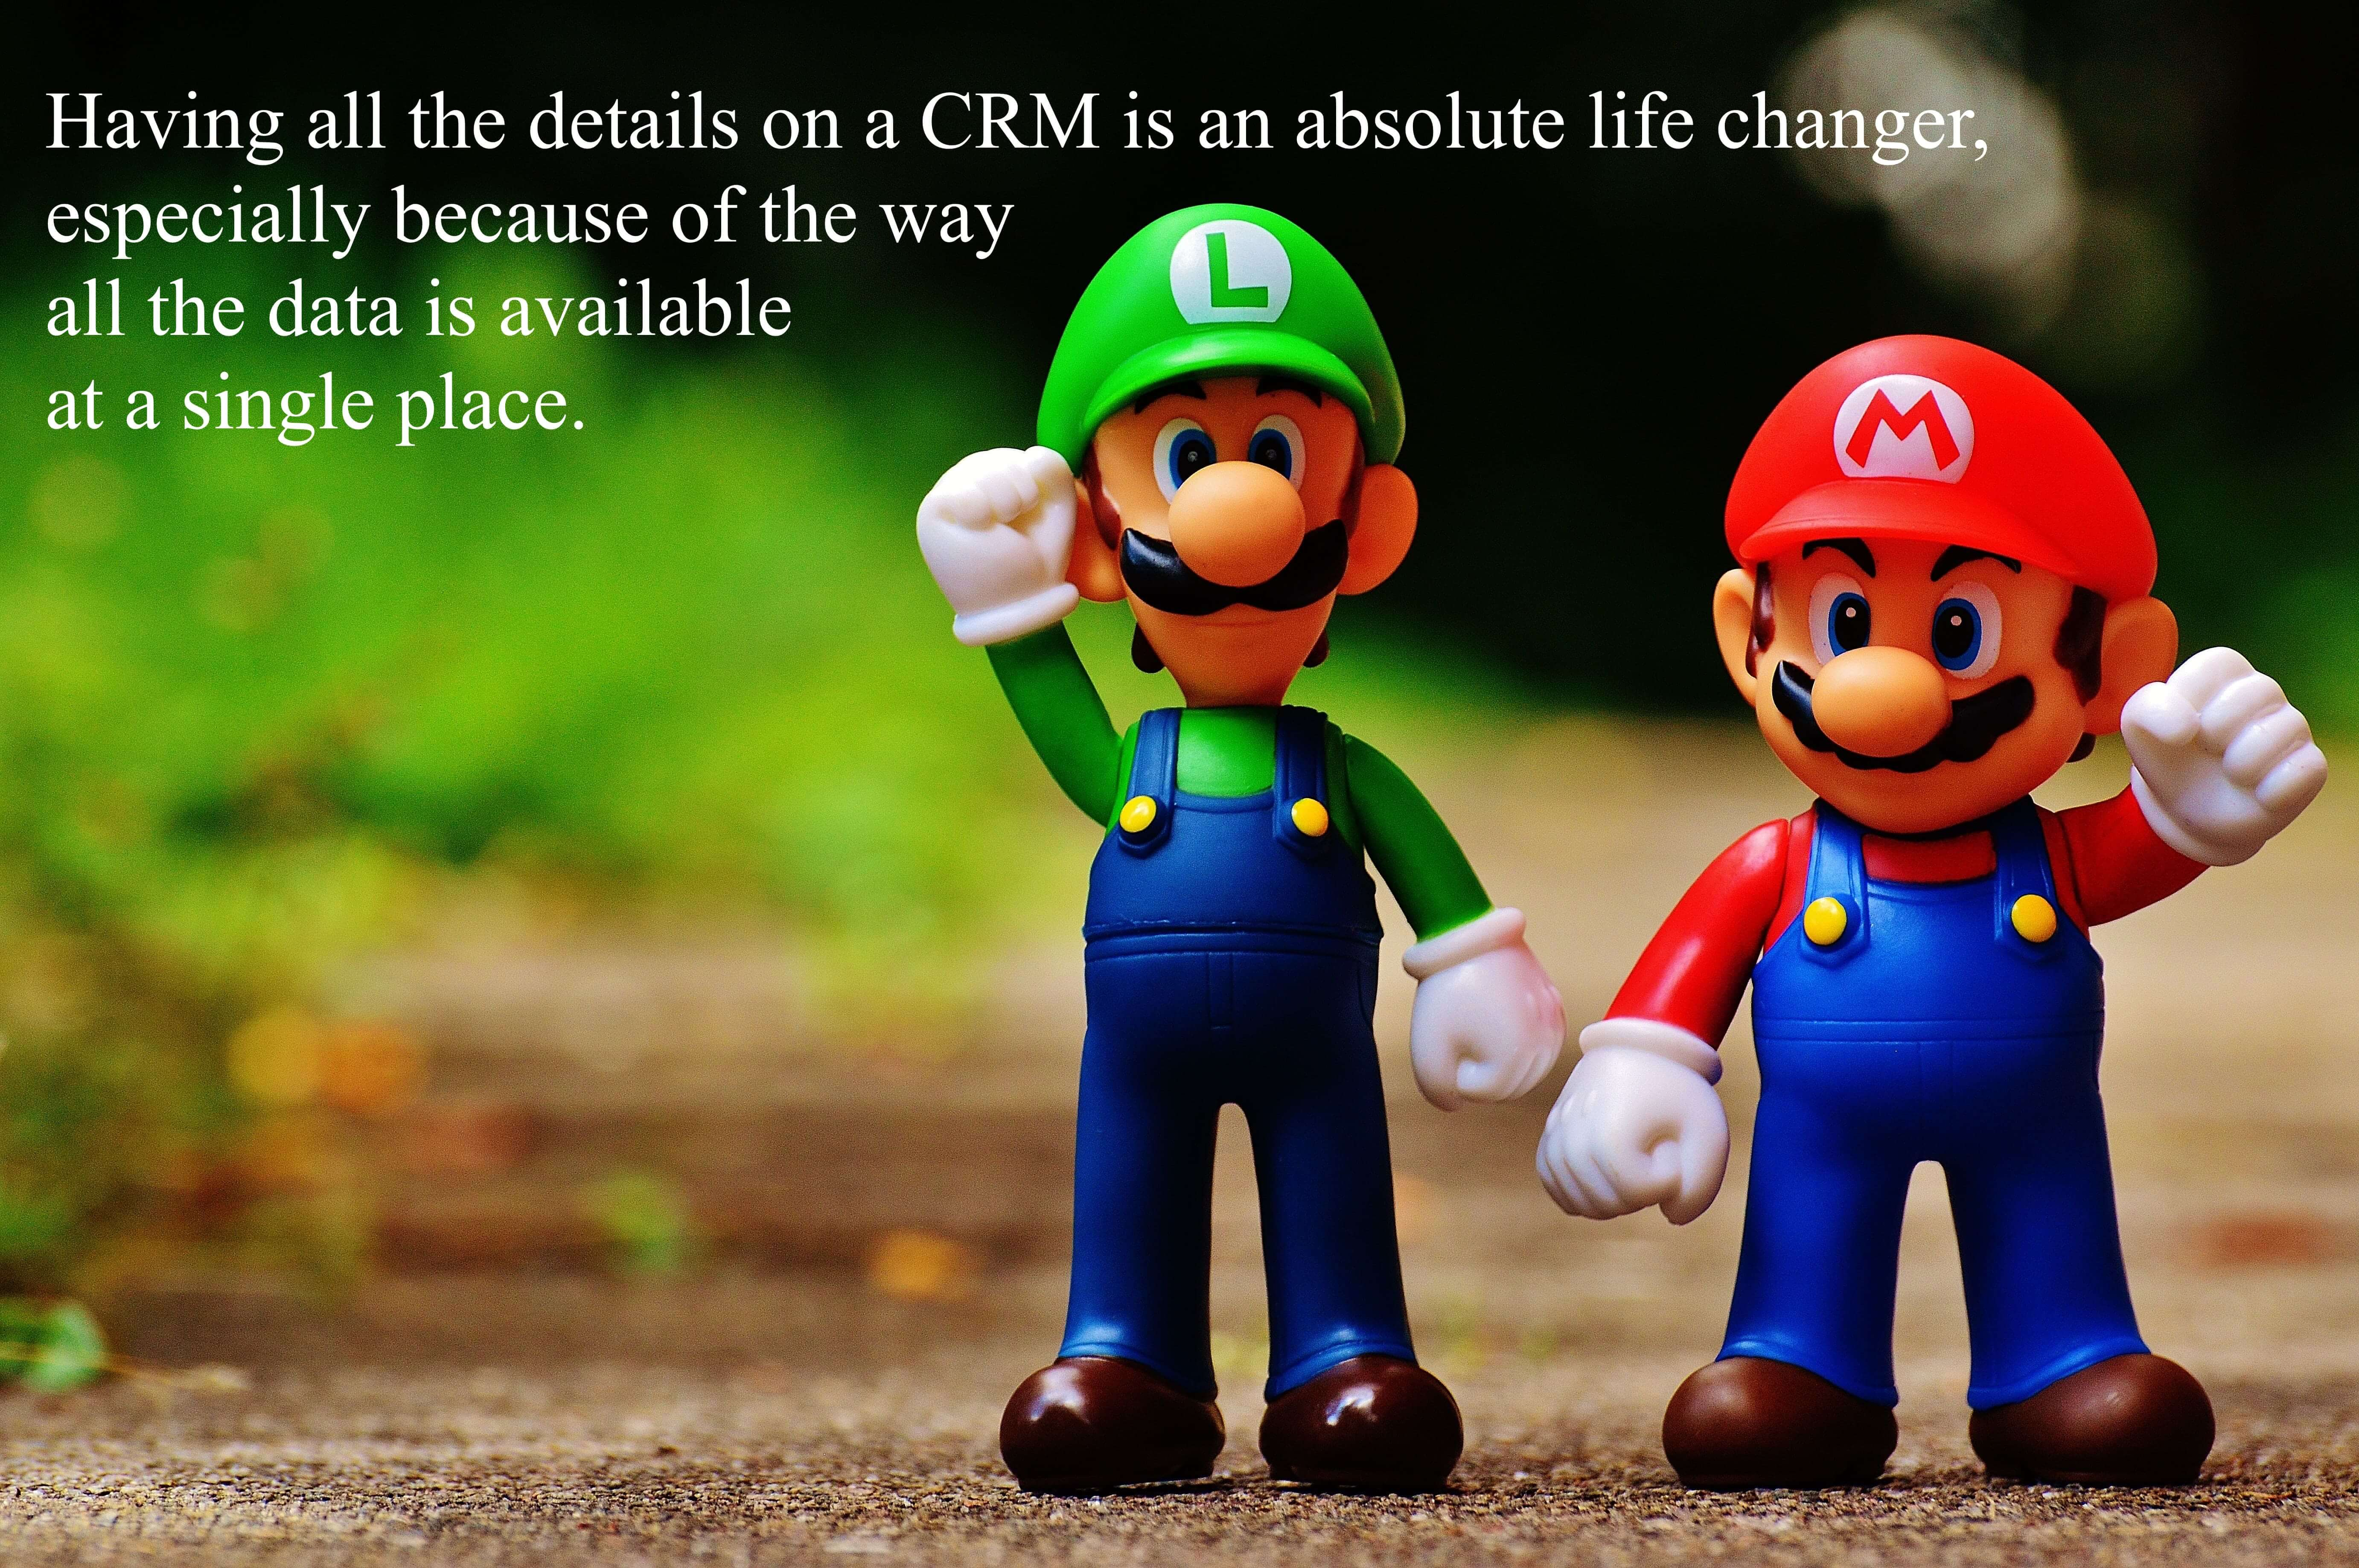 Having all the details on a CRM is an absolute life changer, especially because of the way all the data is available at a single place.